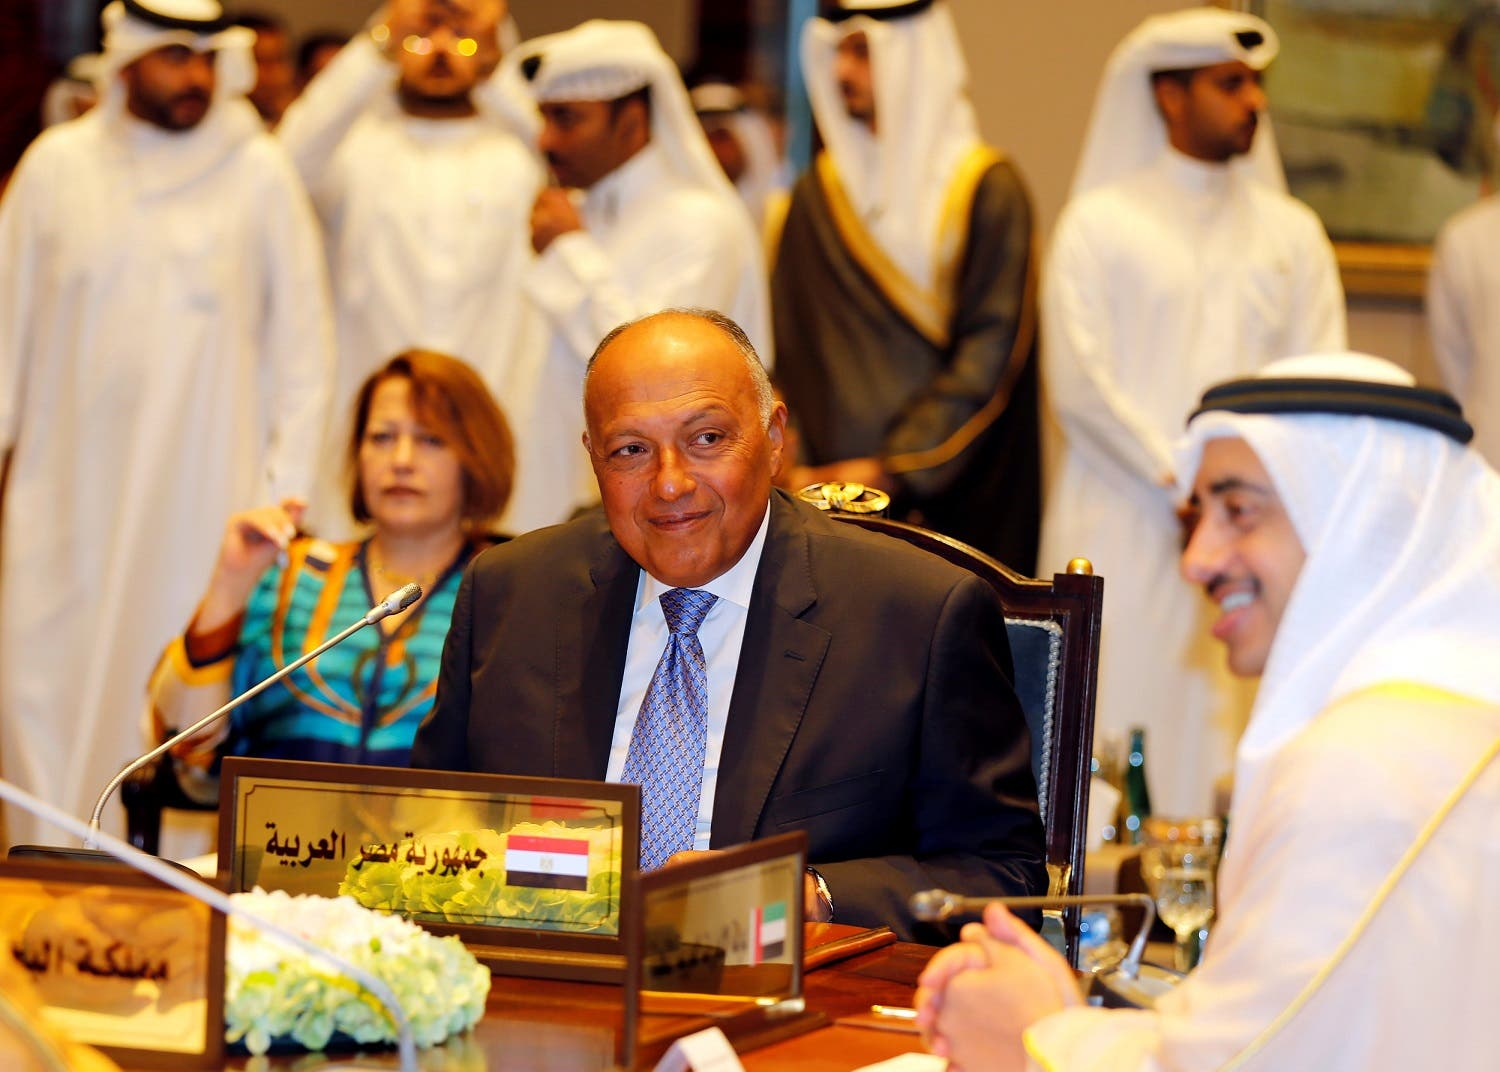 Egypt's Foreign Minister Sameh Shoukri and UAE Foreign Minister Sheikh Abdulla bin Zayed bin Sultan Al Nahyan talk as foreign ministers of Saudi Arabia, Bahrain, the UAE and Egypt meet in Manama, on July 30, 2017. (Reuters)